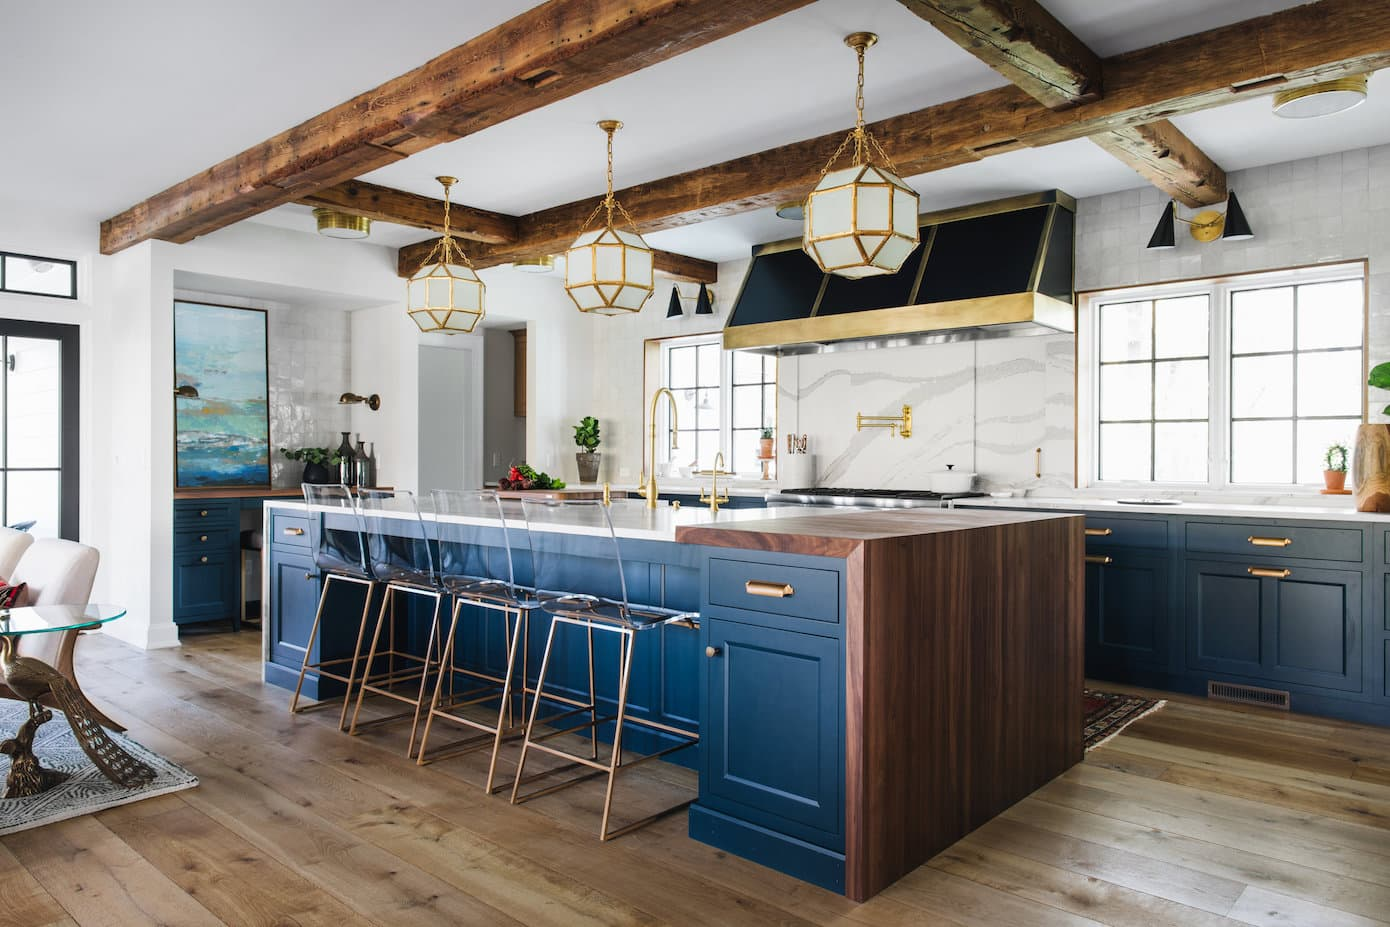 Modern farmhouse kitchen with timber beams, brass and gold accents and large kitchen island